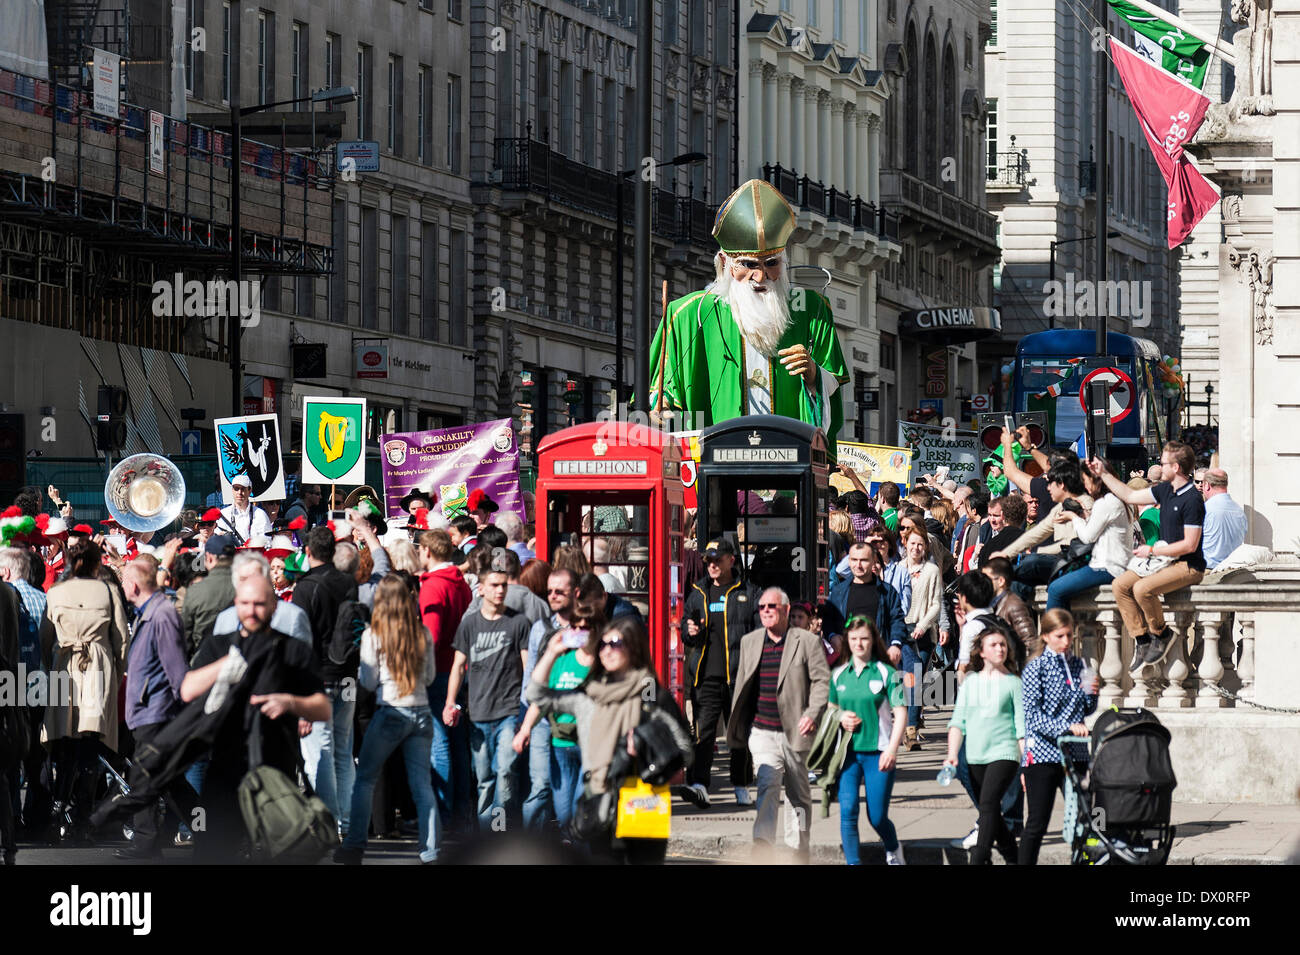 London, UK. 16 March 2014. The annual St Patrick's day parade in London.  Photographer:  Gordon Scammell/Alamy Live News - Stock Image